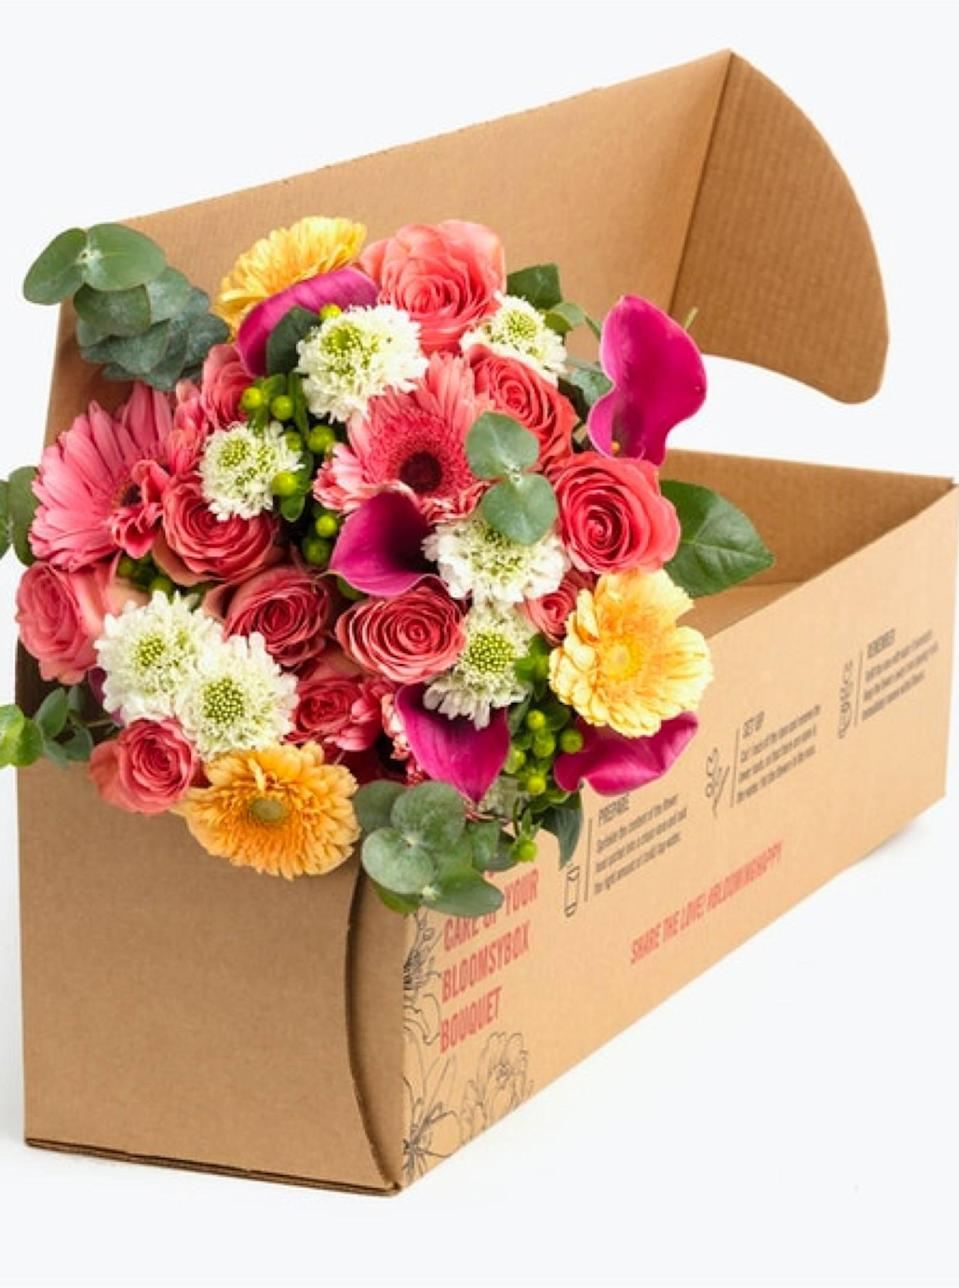 "BloomsyBox is here to solve all your wilted woes: Flowers are shipped nationwide in bud form, and each bouquet is hand-tied and wrapped in eco-friendly paper for extra care. $70, Pastel Daydream Premium. <a href=""https://www.bloomsybox.com/p/sweet-love-premium"" rel=""nofollow noopener"" target=""_blank"" data-ylk=""slk:Get it now!"" class=""link rapid-noclick-resp"">Get it now!</a>"